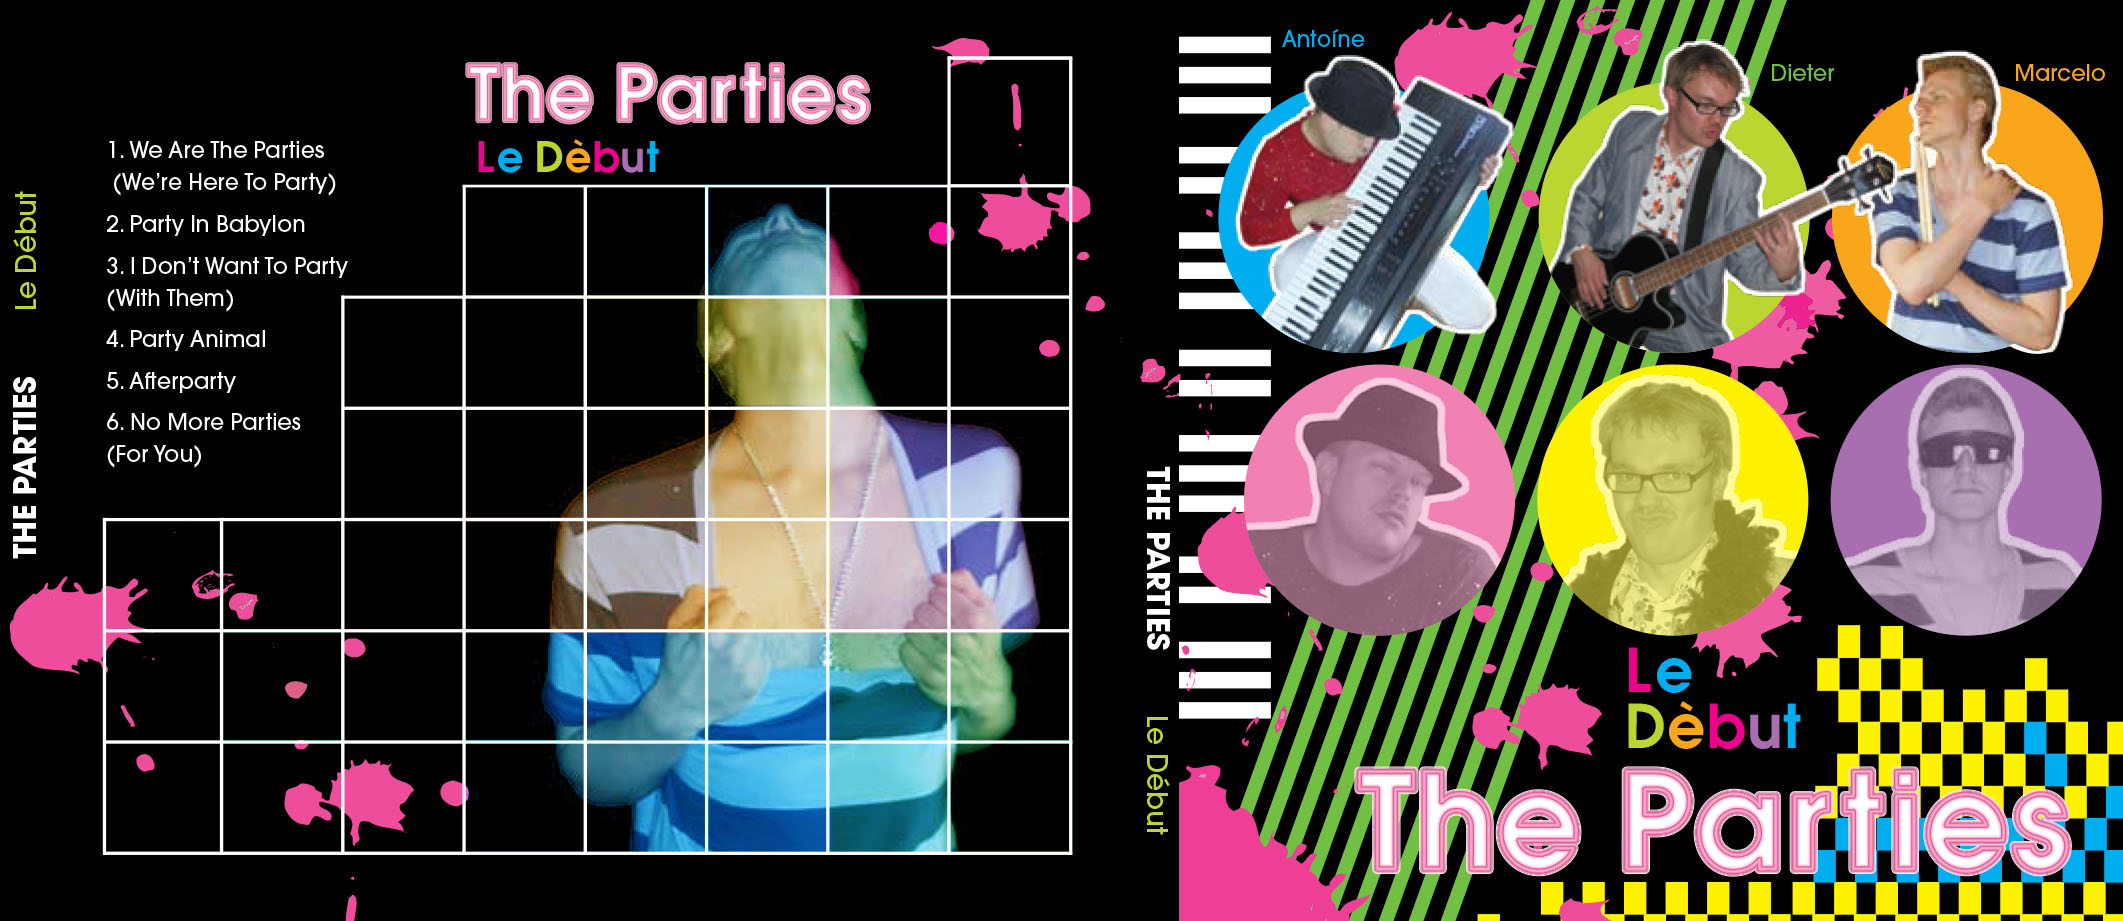 The Parties - CD cover layout